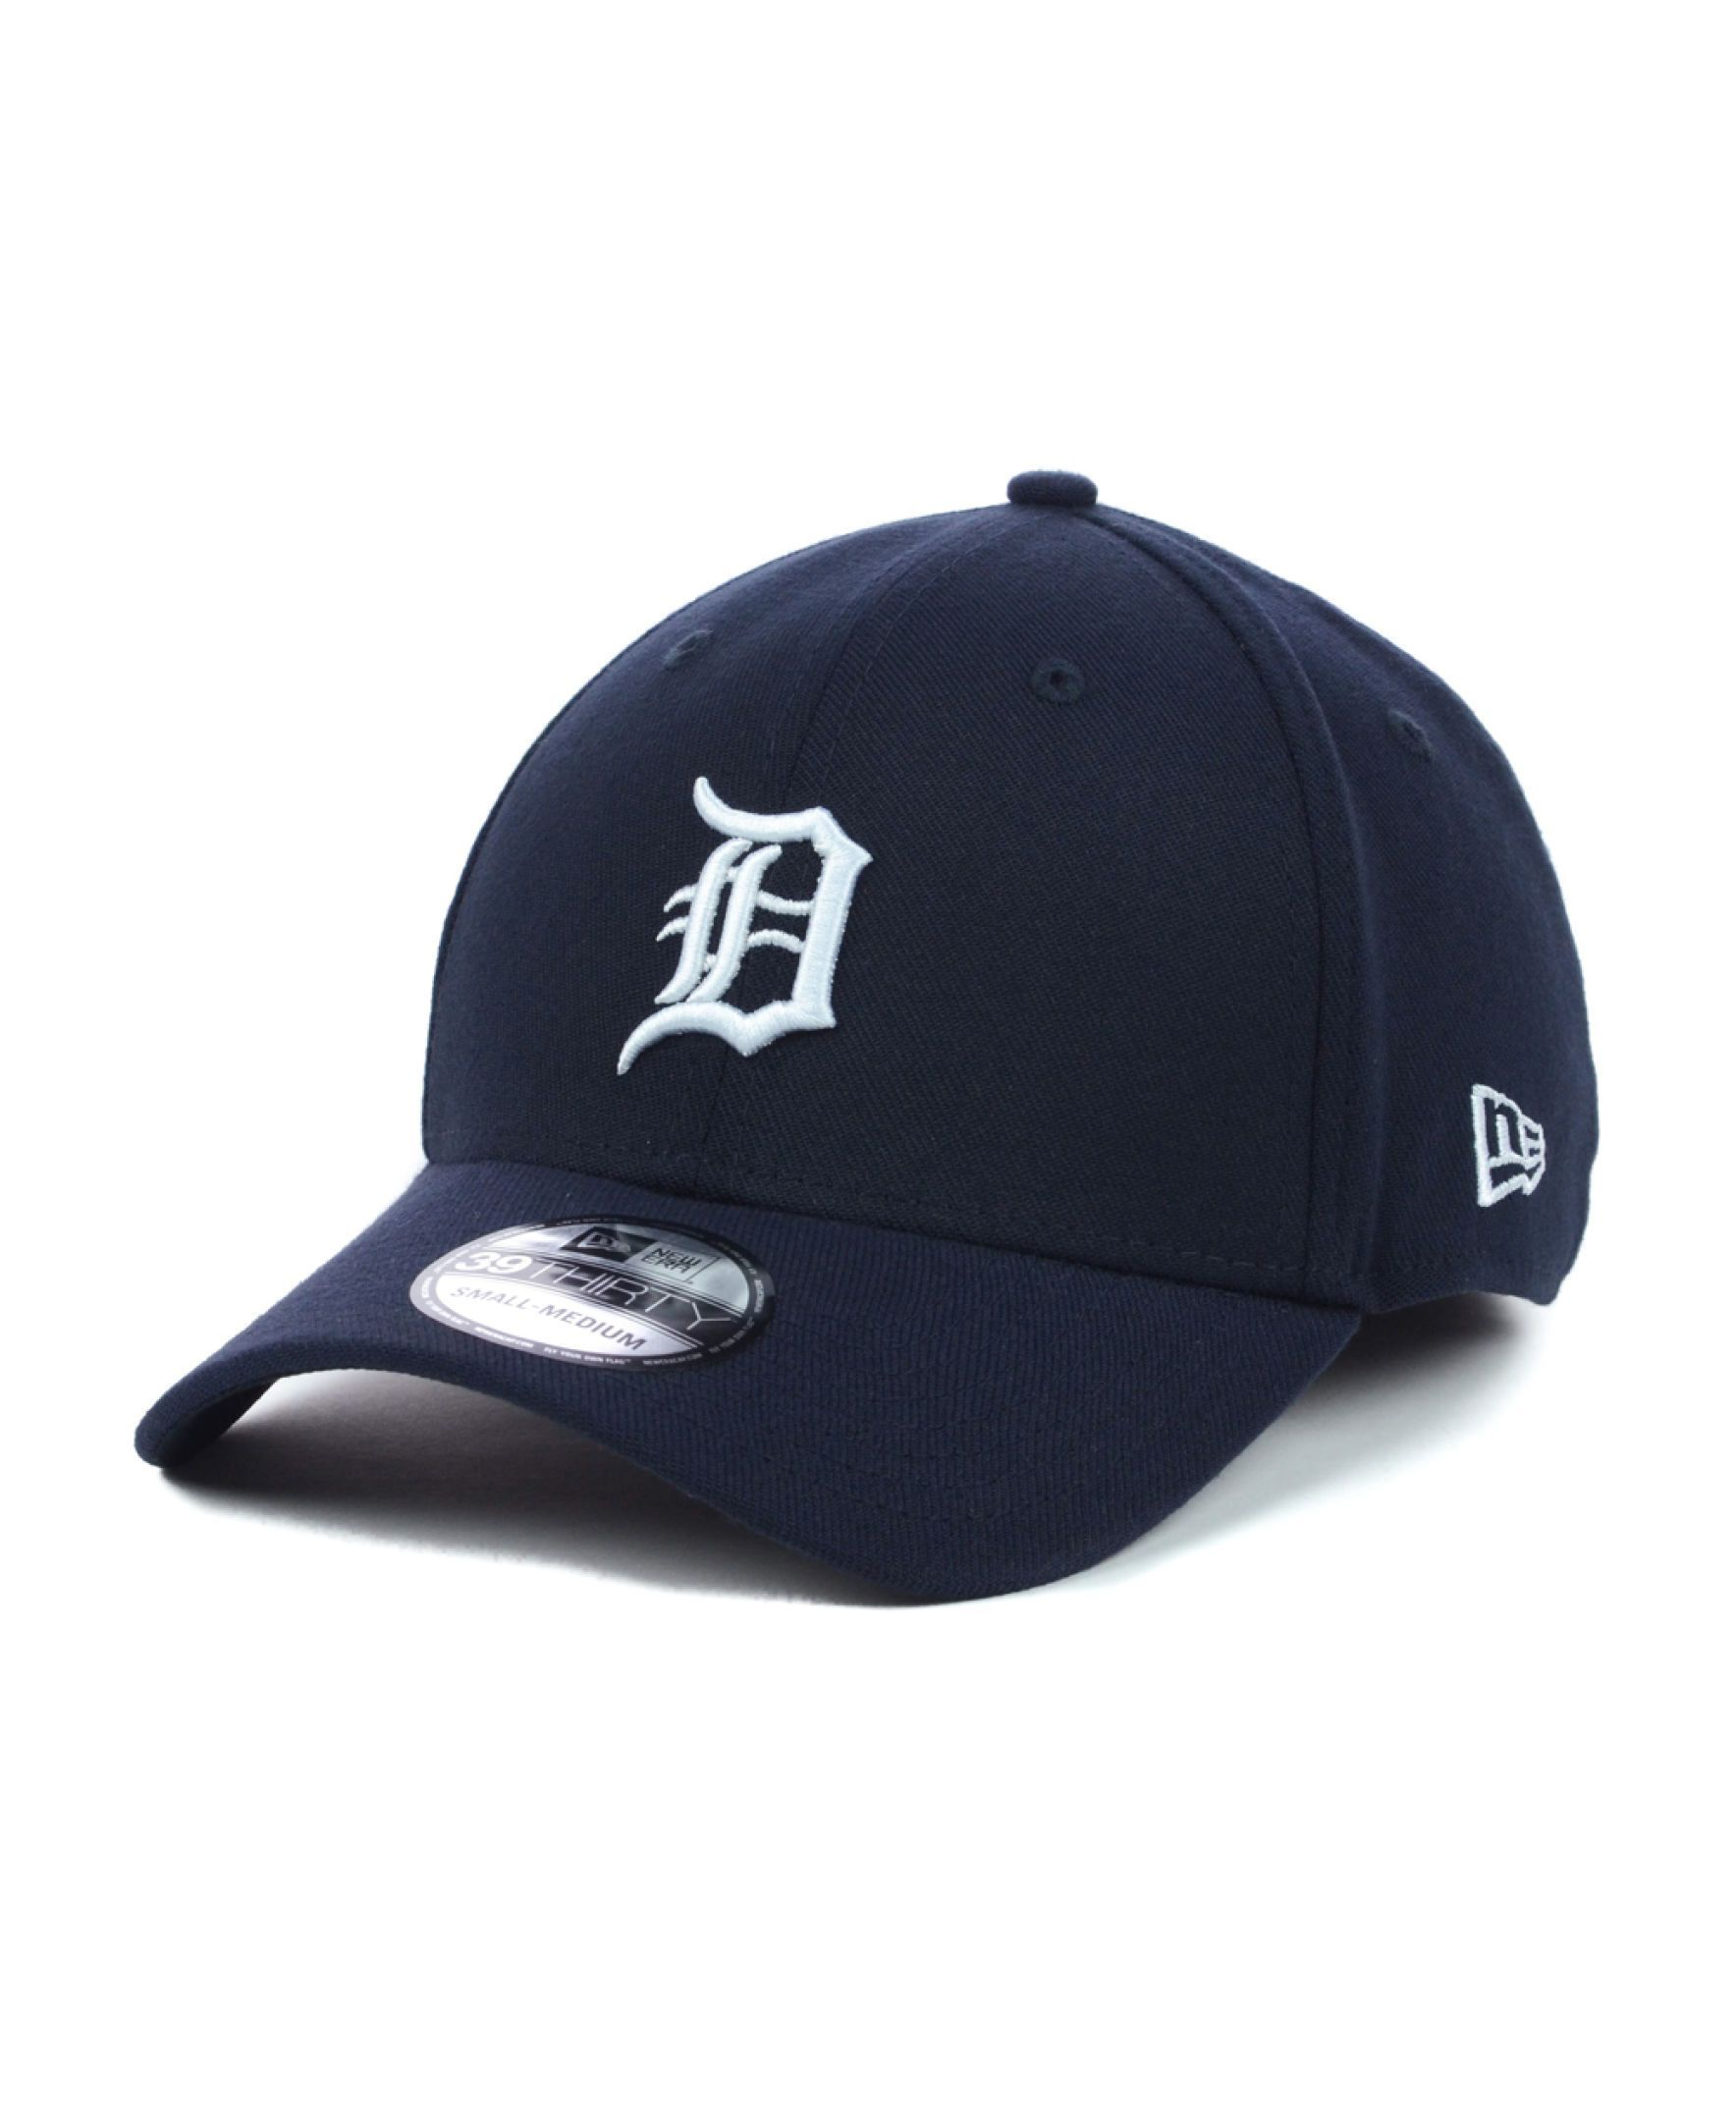 timeless design f7d7f 60c54 New Era Detroit Tigers Mlb Team Classic 39THIRTY Cap